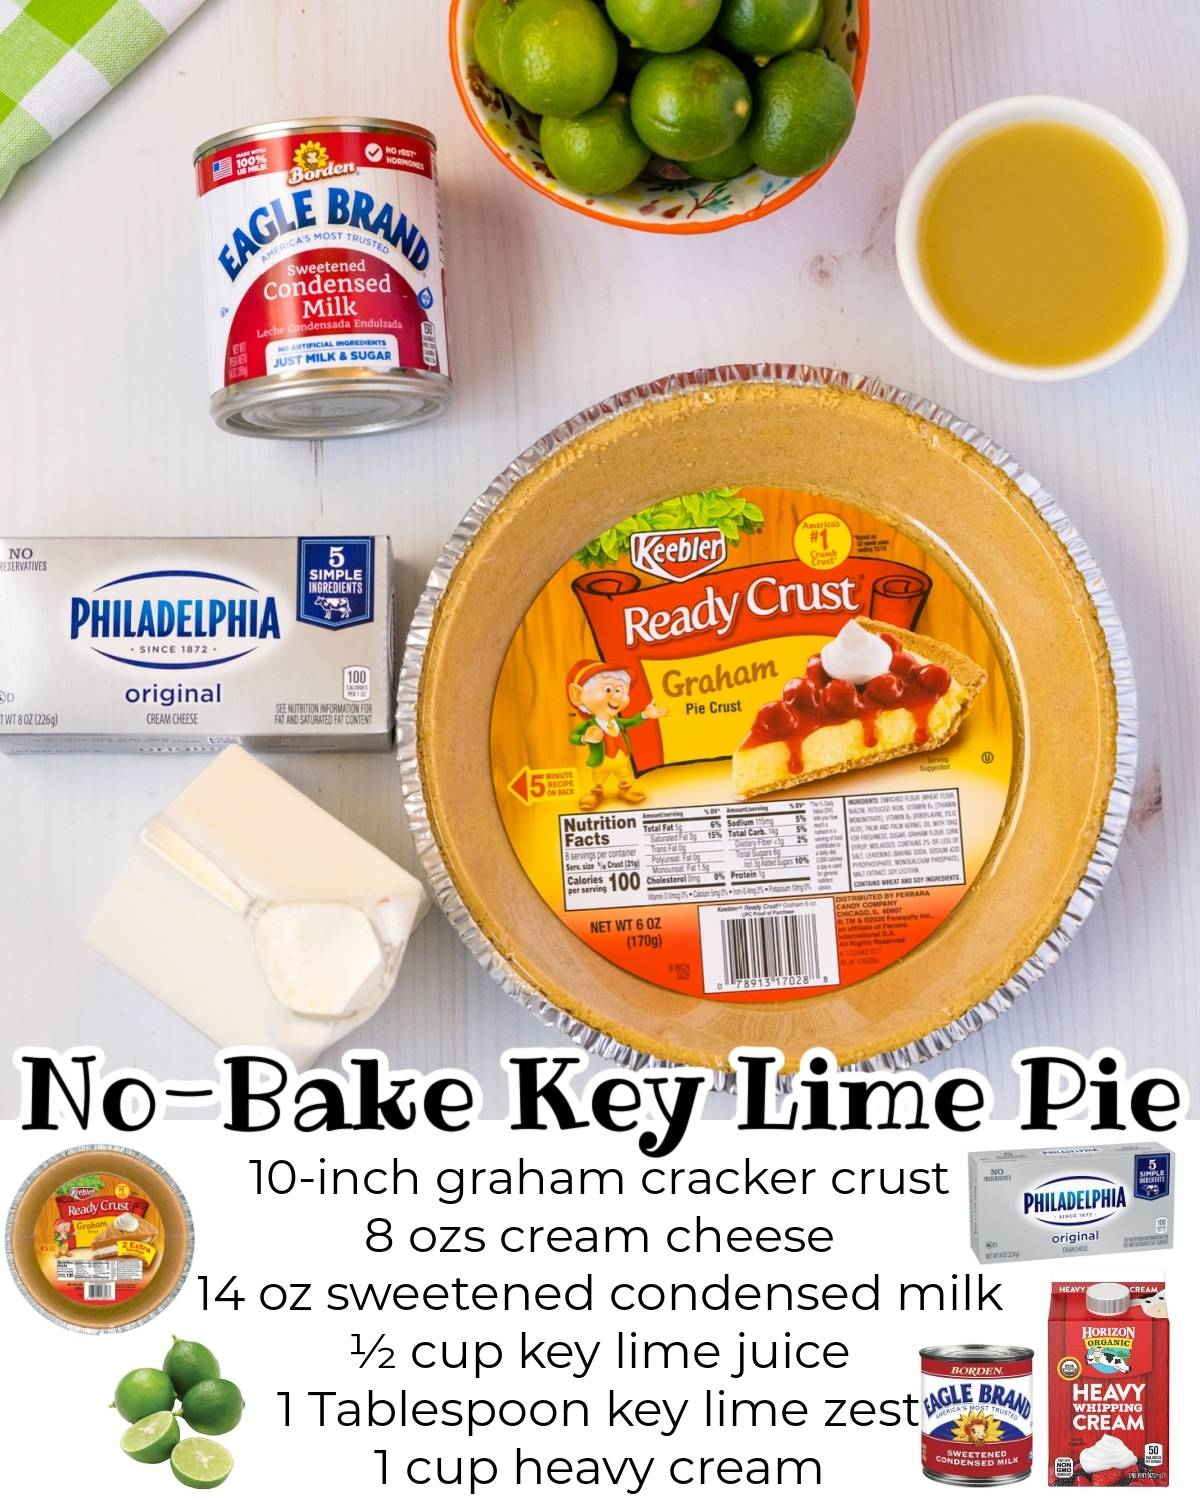 All of the ingredients needed to make this no-bake key lime pie.